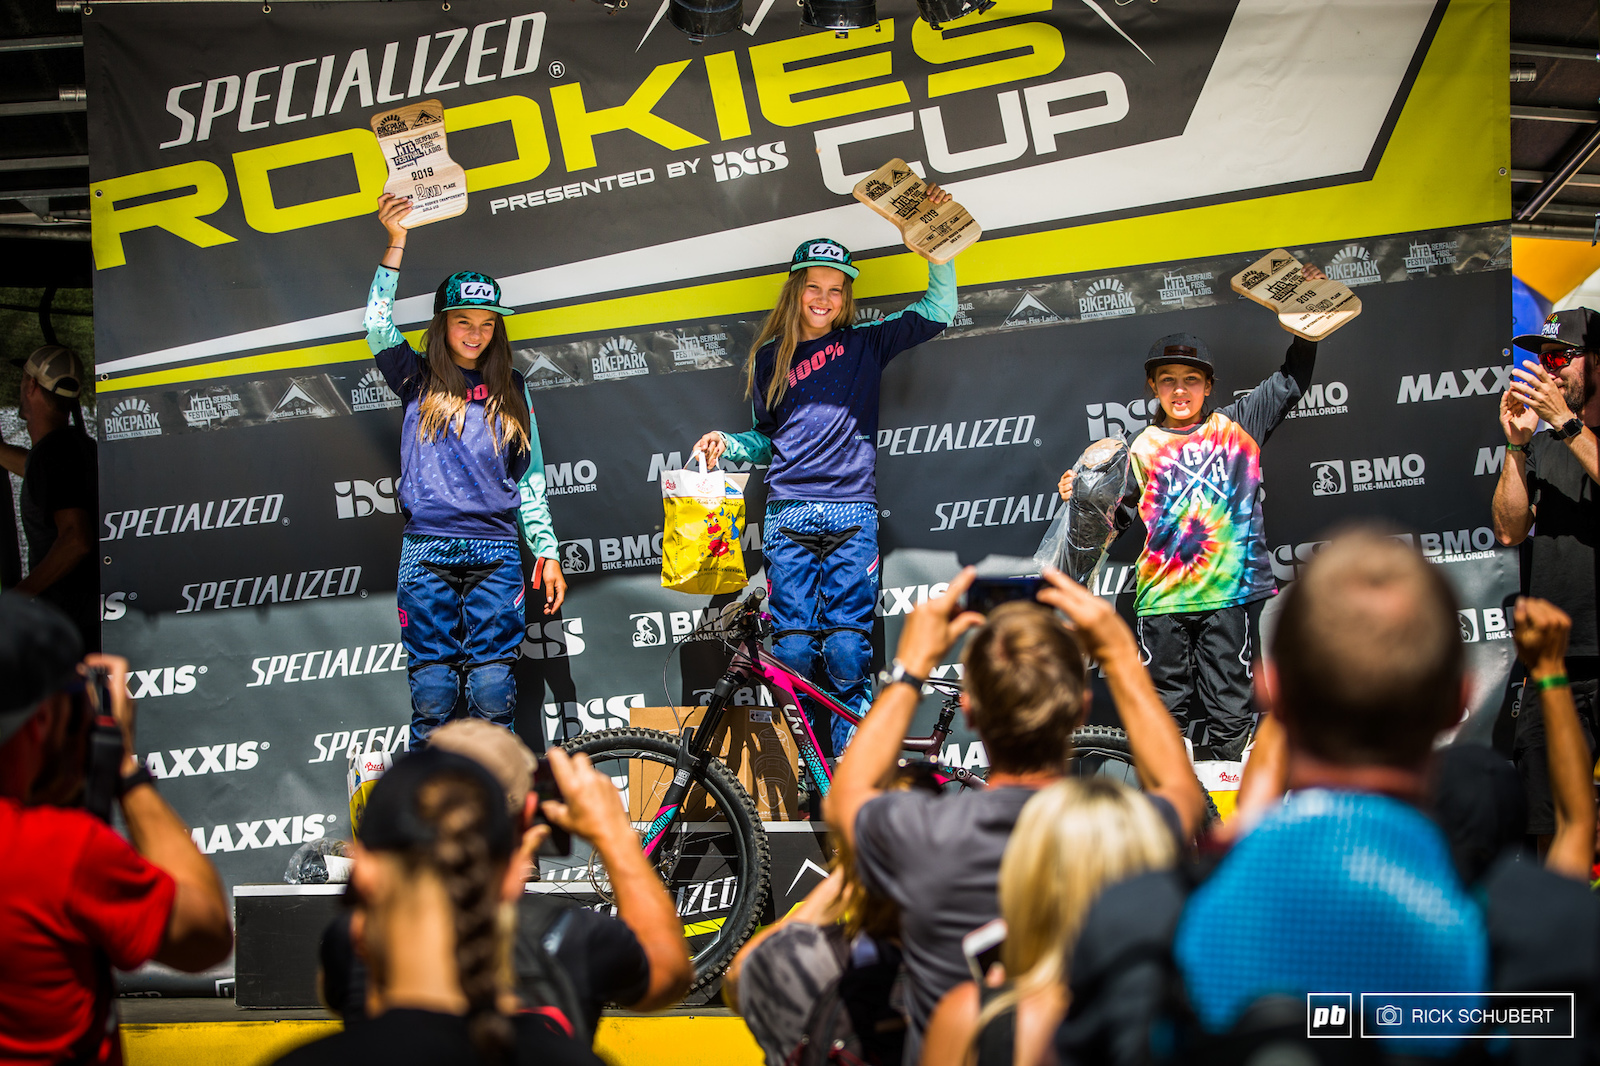 Podium Girls U13 with Anouk Reiner Rosa Zierl and Maxima Jaax